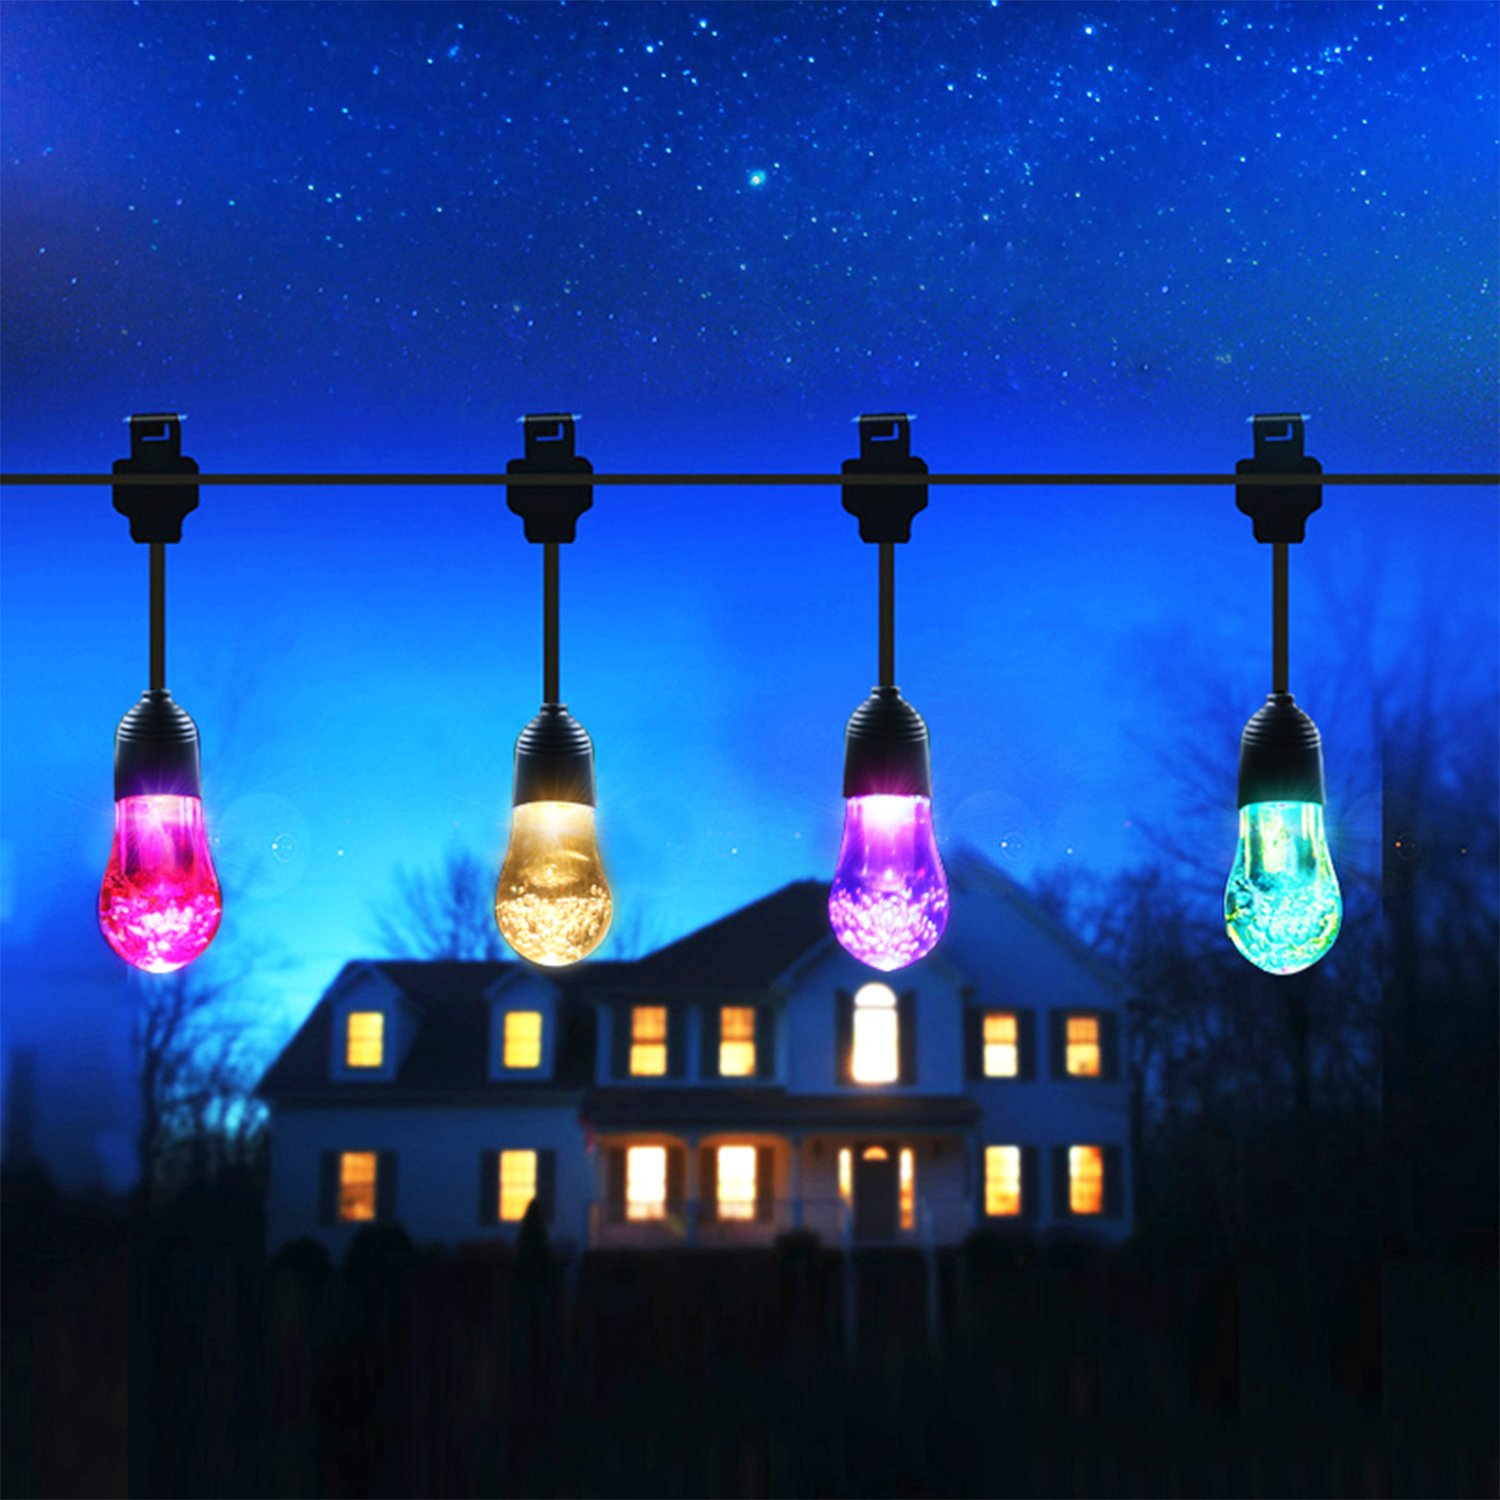 Mthinkor Solar String Light Waterproof 12 Crystal Balls Solar Powered Fairy Lighting for Garden, Patio, Yard, Home, Parties, Warm White/Multiple Color by Mthinkor